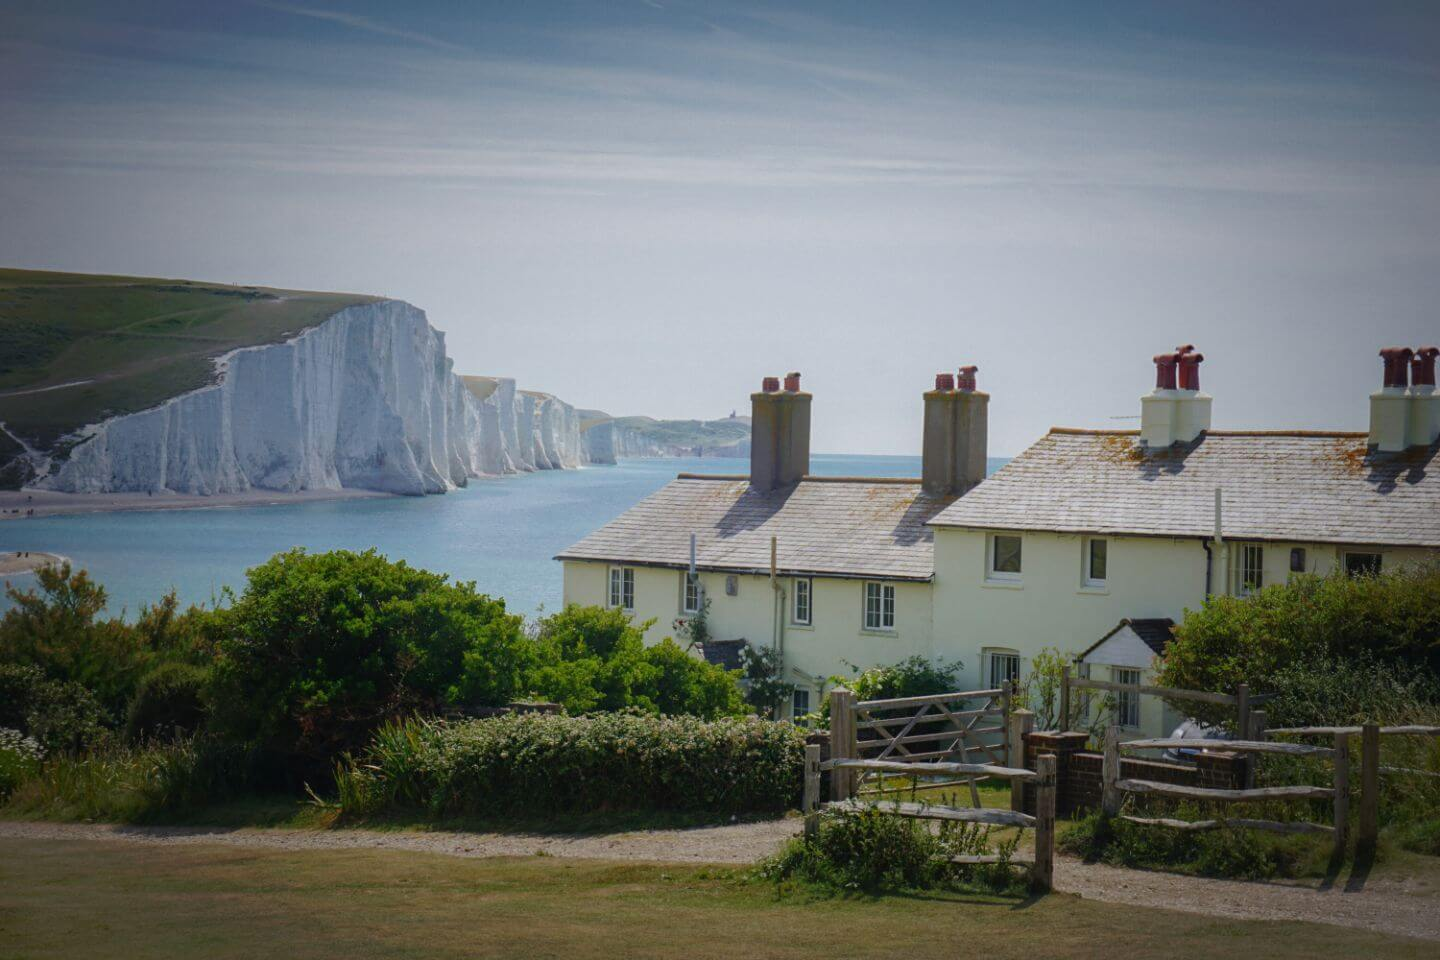 Coast Guard Cottages, Cuckmere Haven - Seven Sisters Cliffs Walk, England